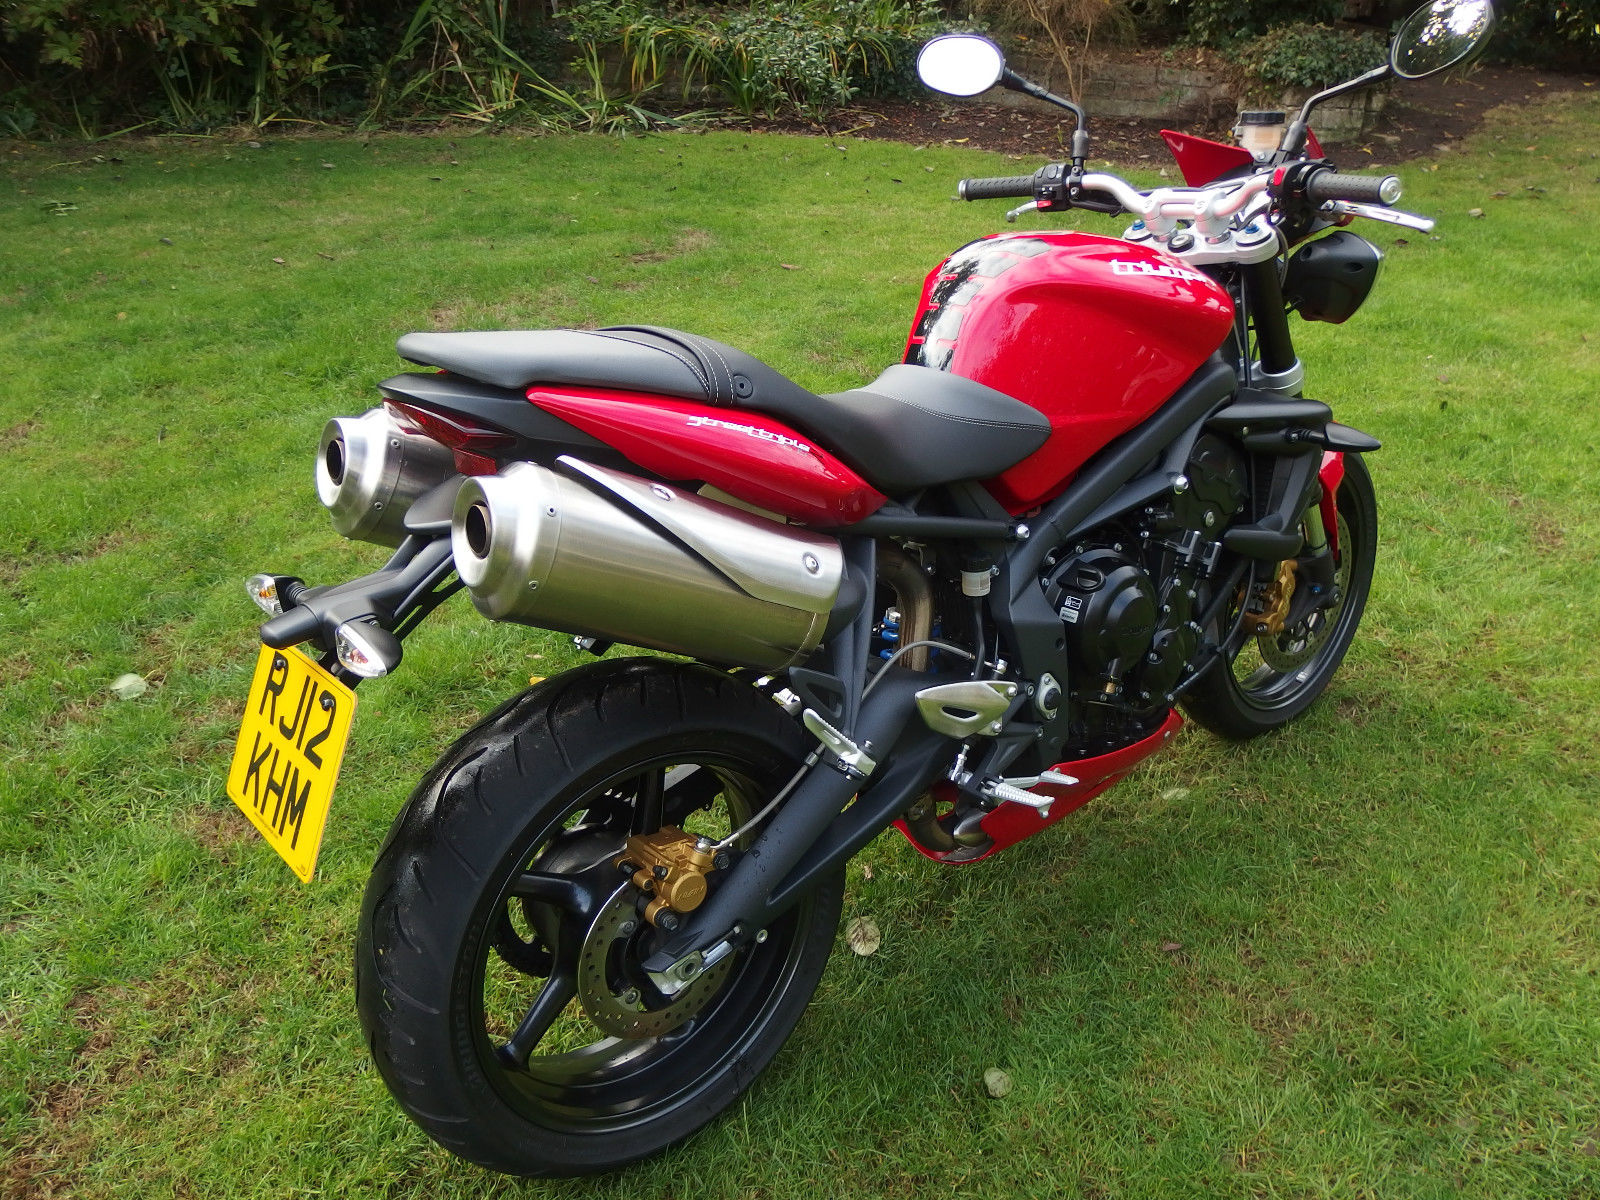 2012 12 triumph street triple r 4k reduced free delivery may px swap. Black Bedroom Furniture Sets. Home Design Ideas